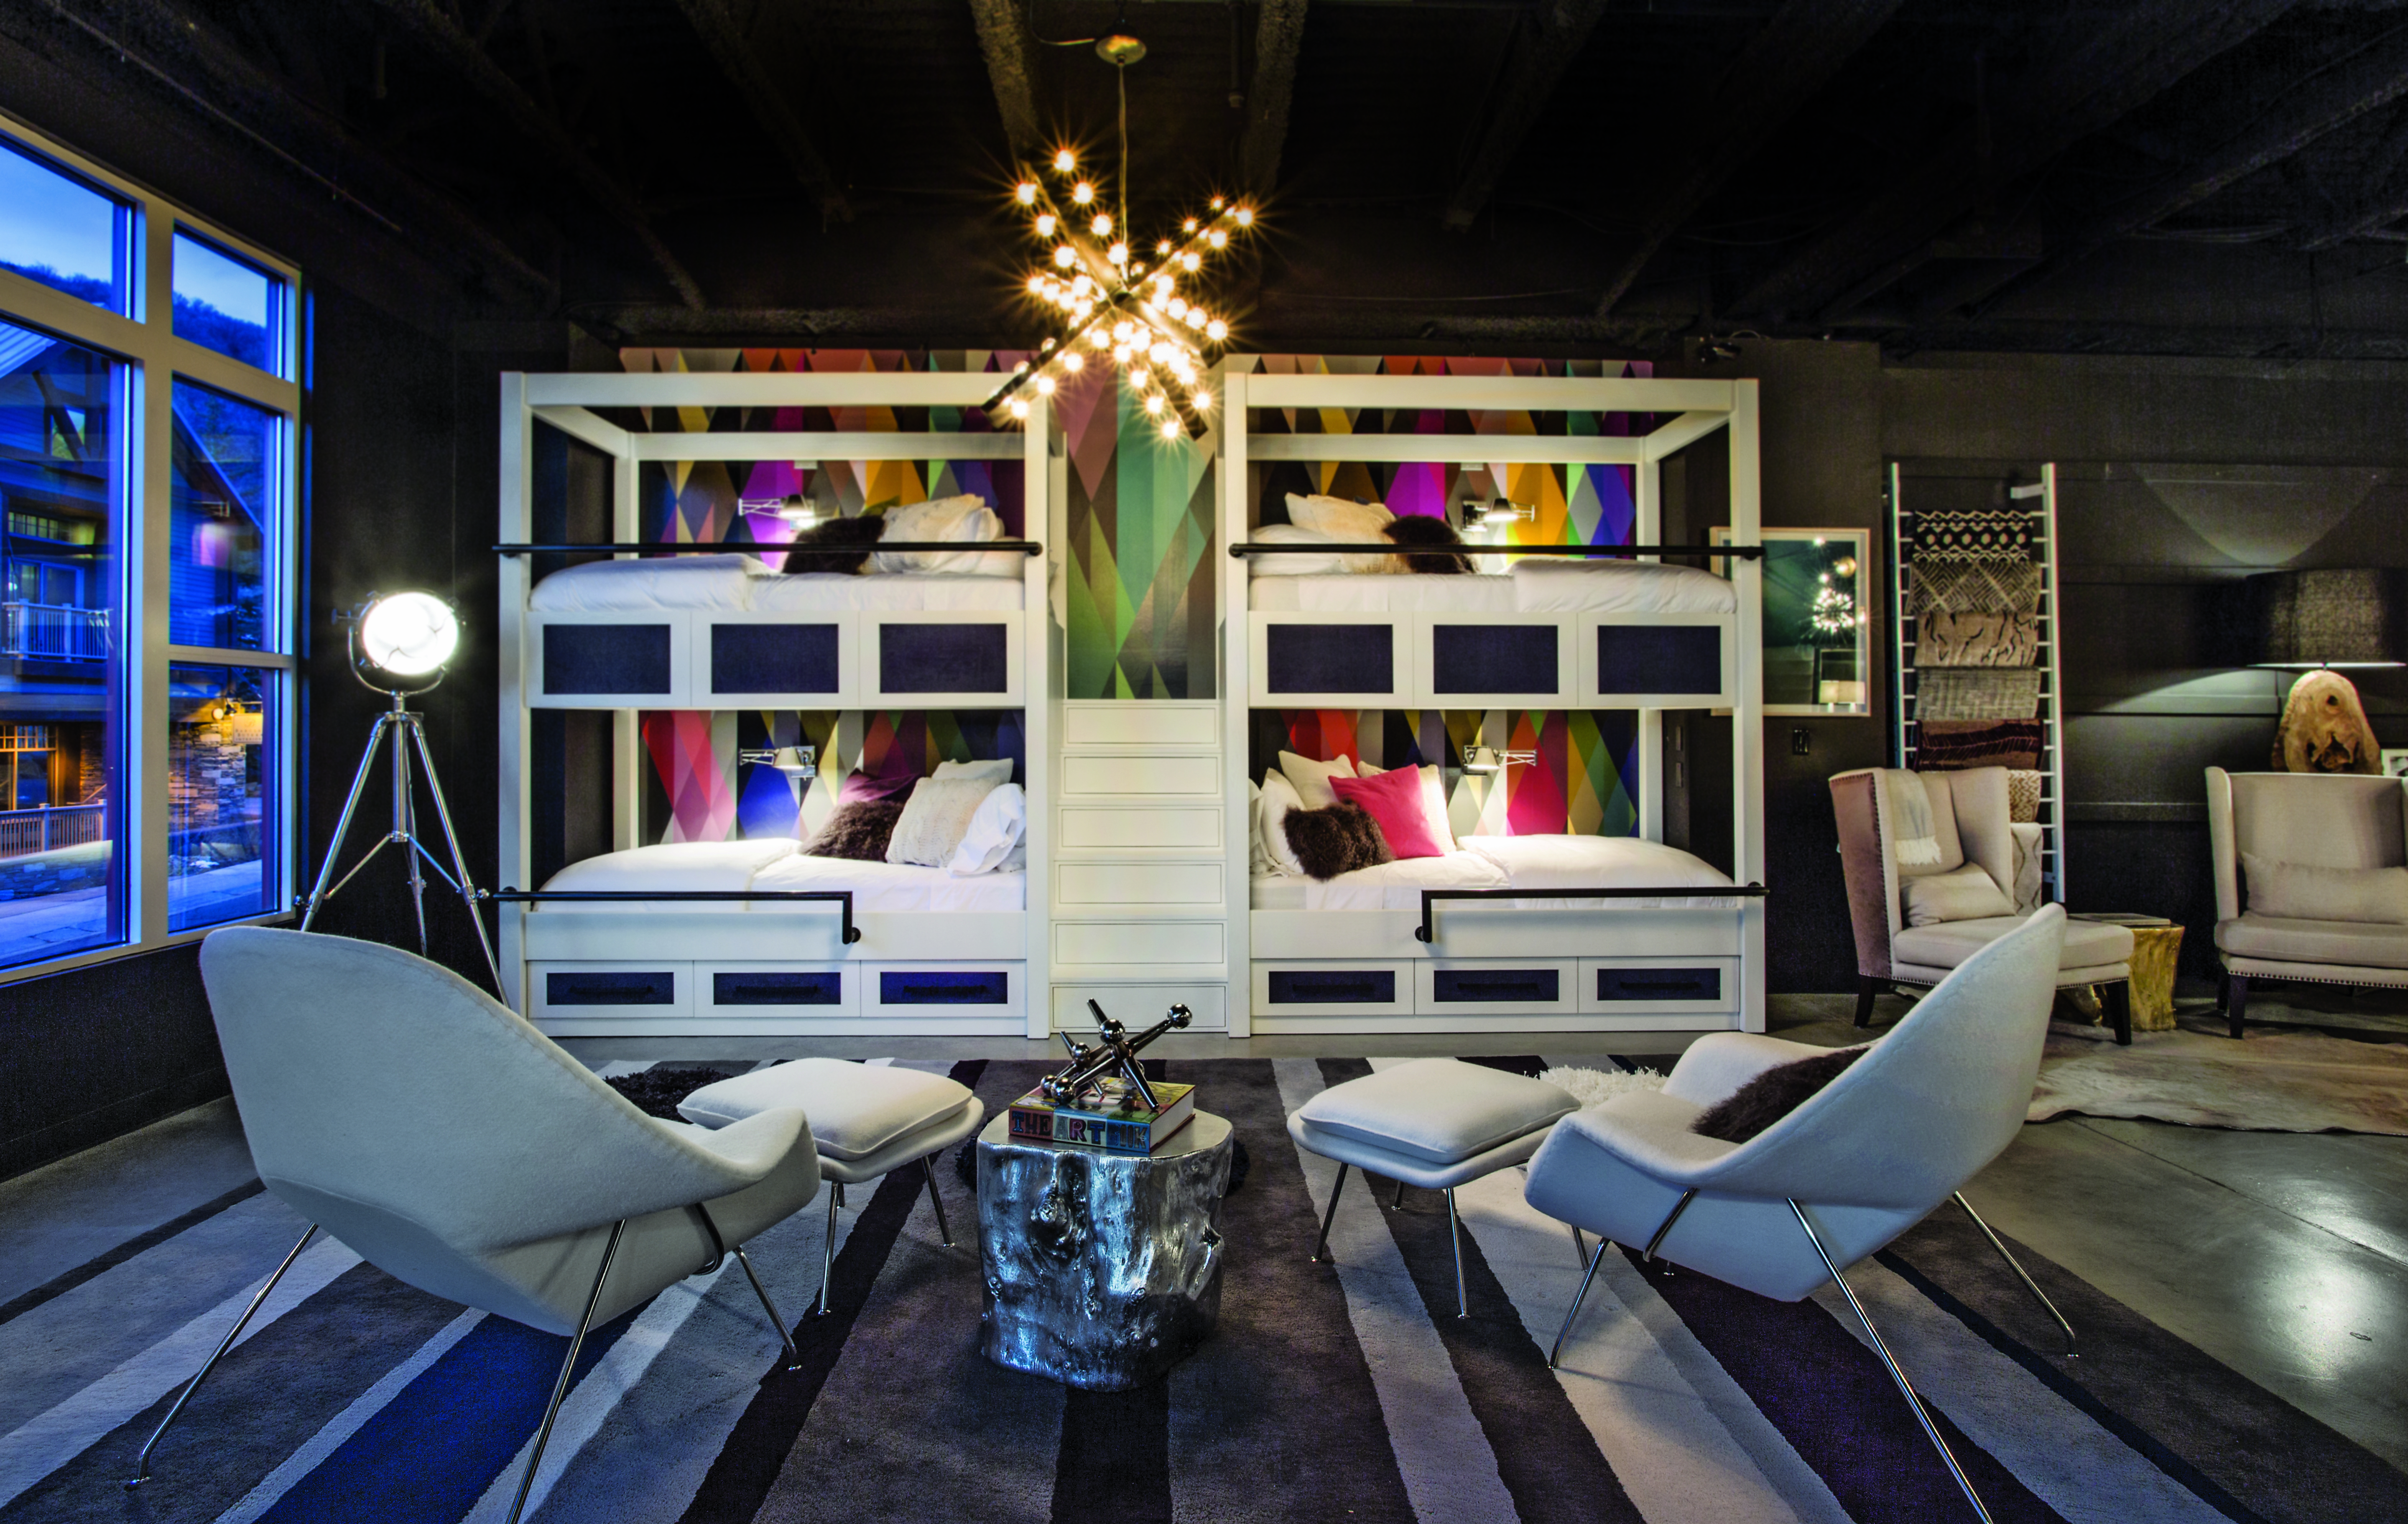 Sleek Modern Chairs A Light Fixture Full Of Bling And Clean White Bunk Bed Lines Result In Chic Bunkroom Designed To Wow Kids Adults Alike